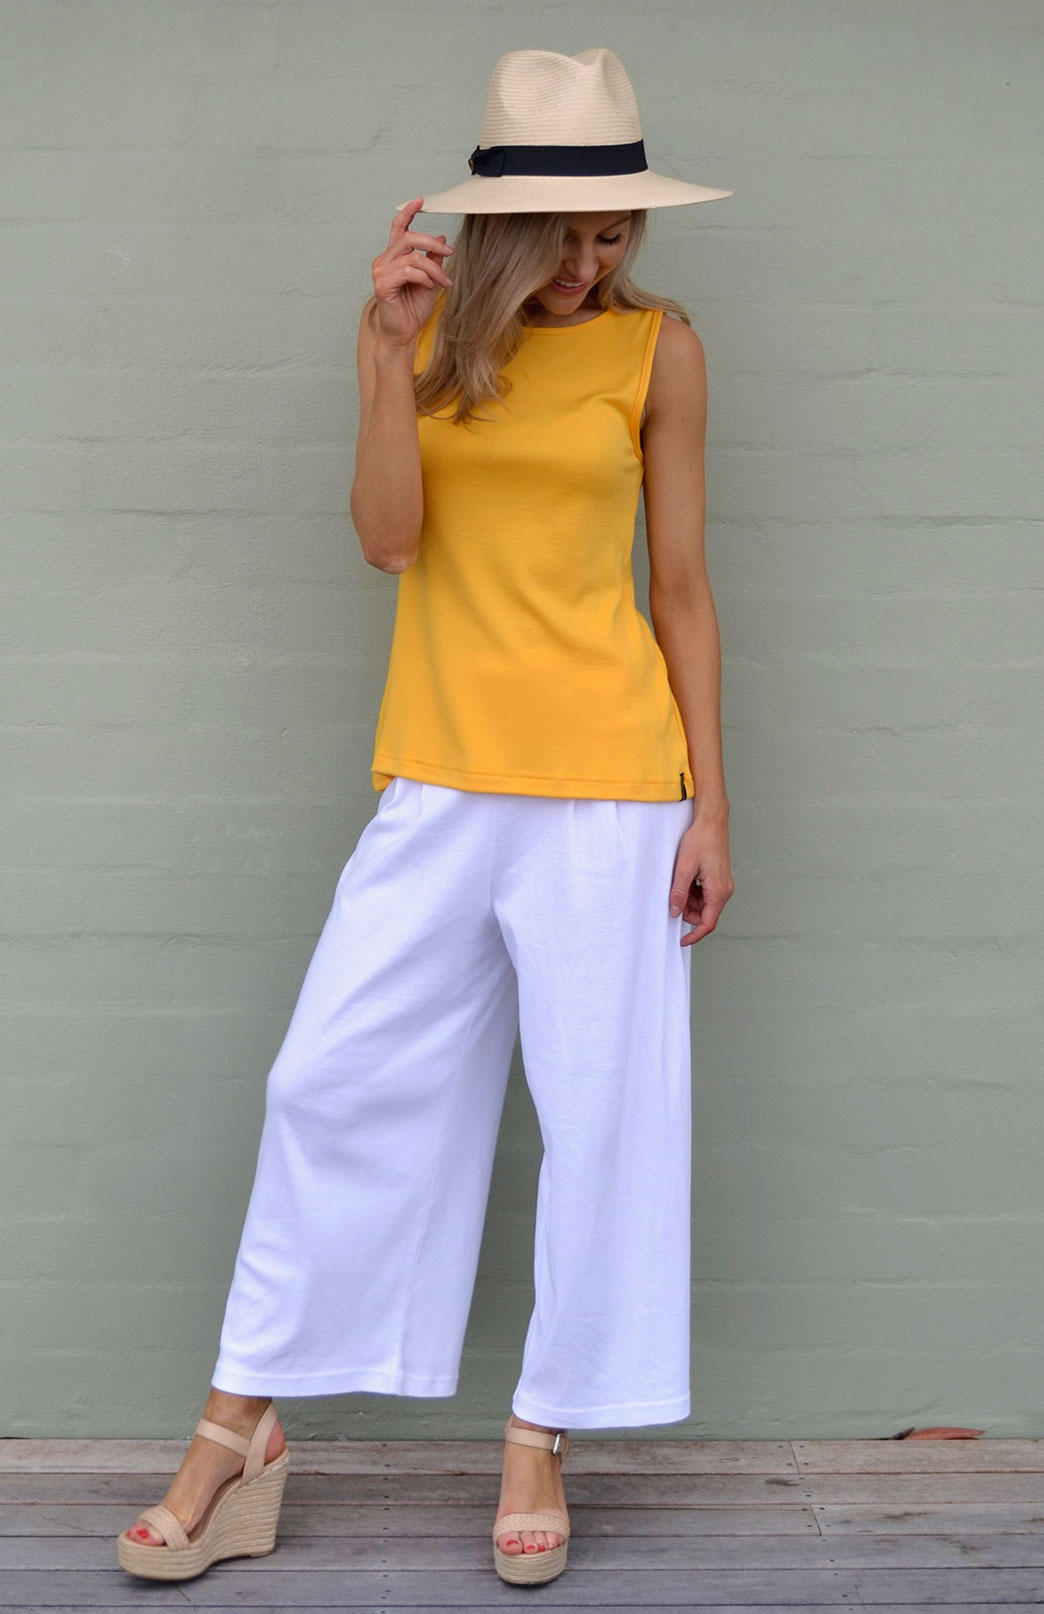 Wide Leg Crop Pant - COTTON - Women's Merino Cotton Crop Pants with Wide Legs and Waistband - Smitten Merino Tasmania Australia